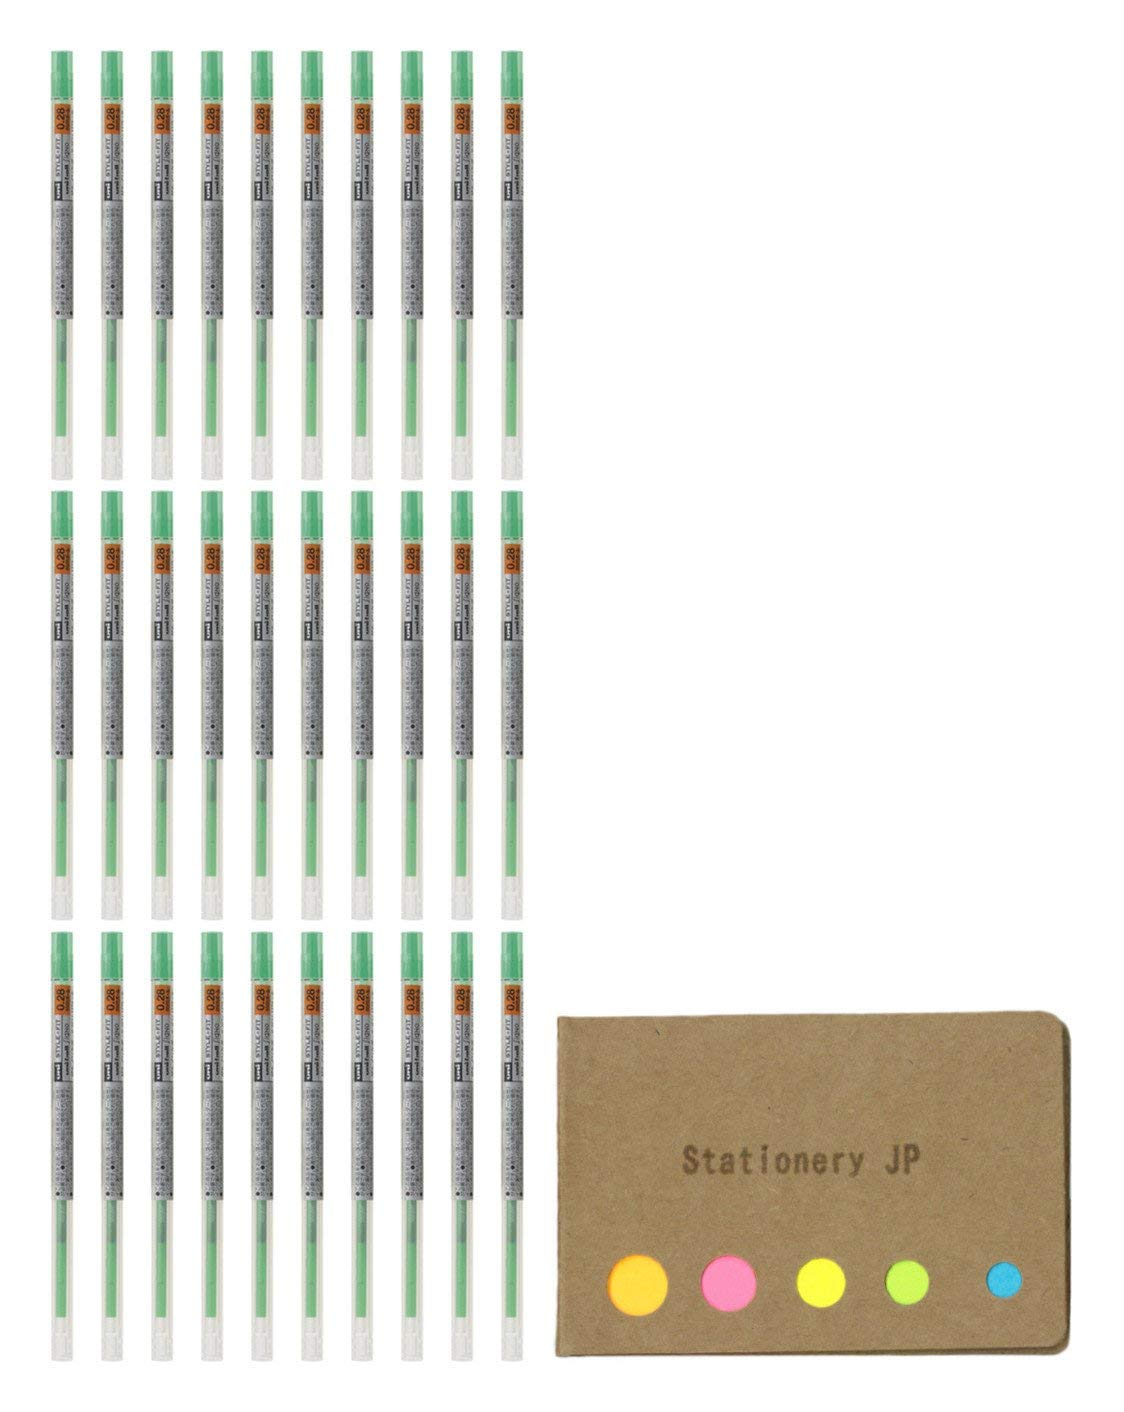 Uni-ball Signo Gel Ink Refills for Uni Style Fit Gel Multi Pen 0.28mm Green Ink, 30-pack, Sticky Notes Value Set